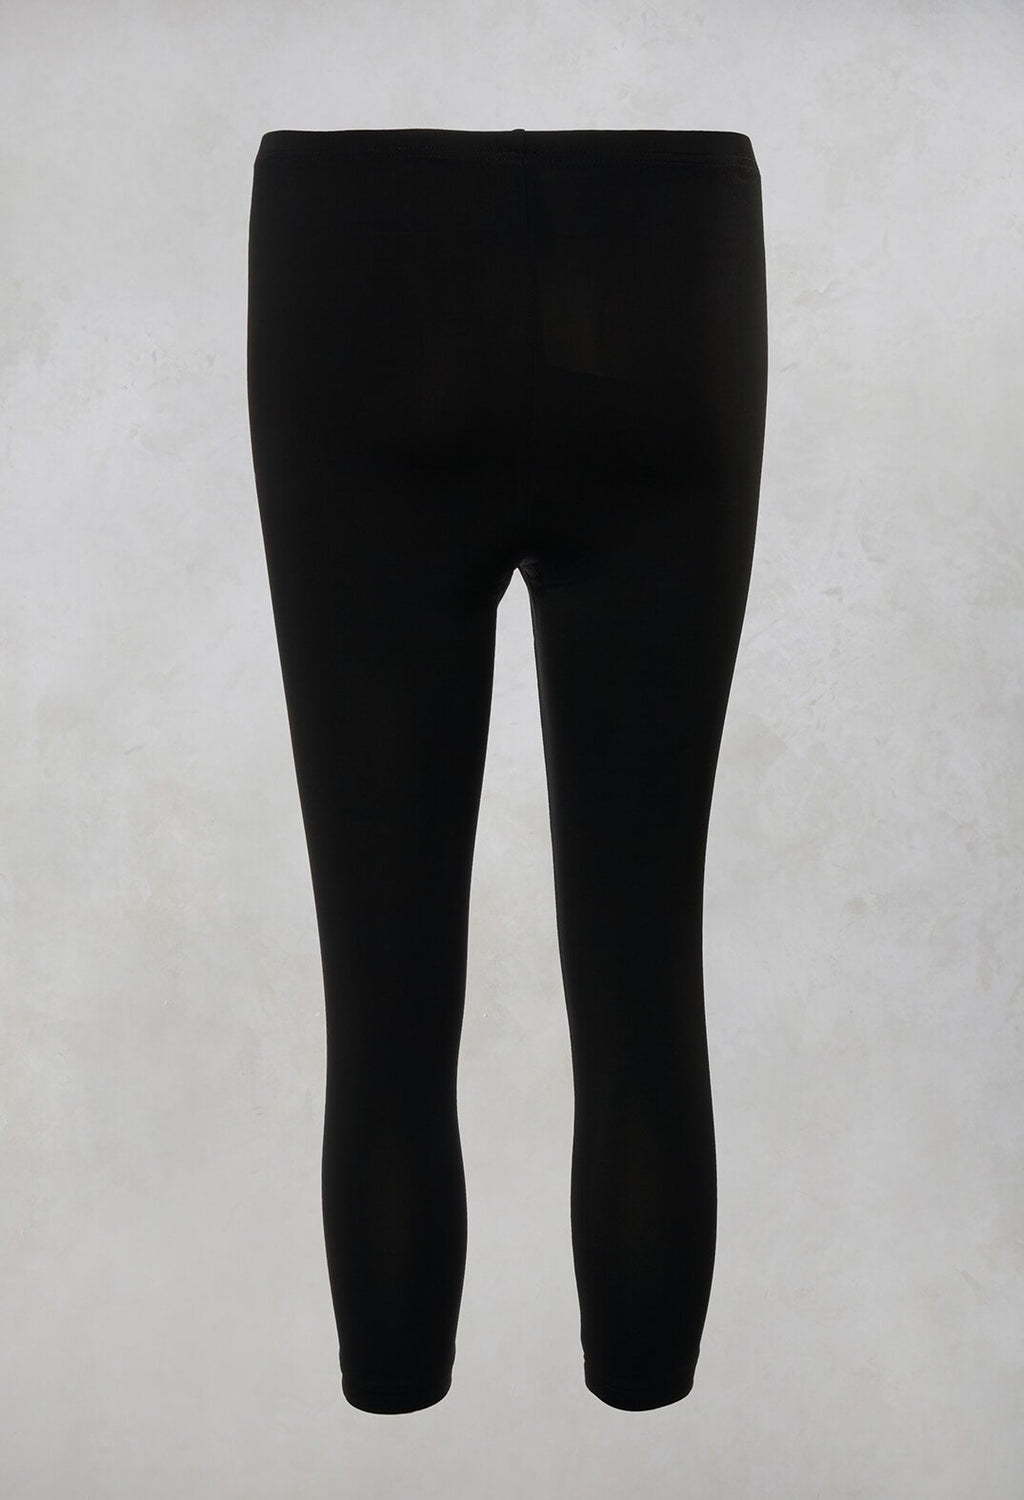 3/4 Leggings in Black